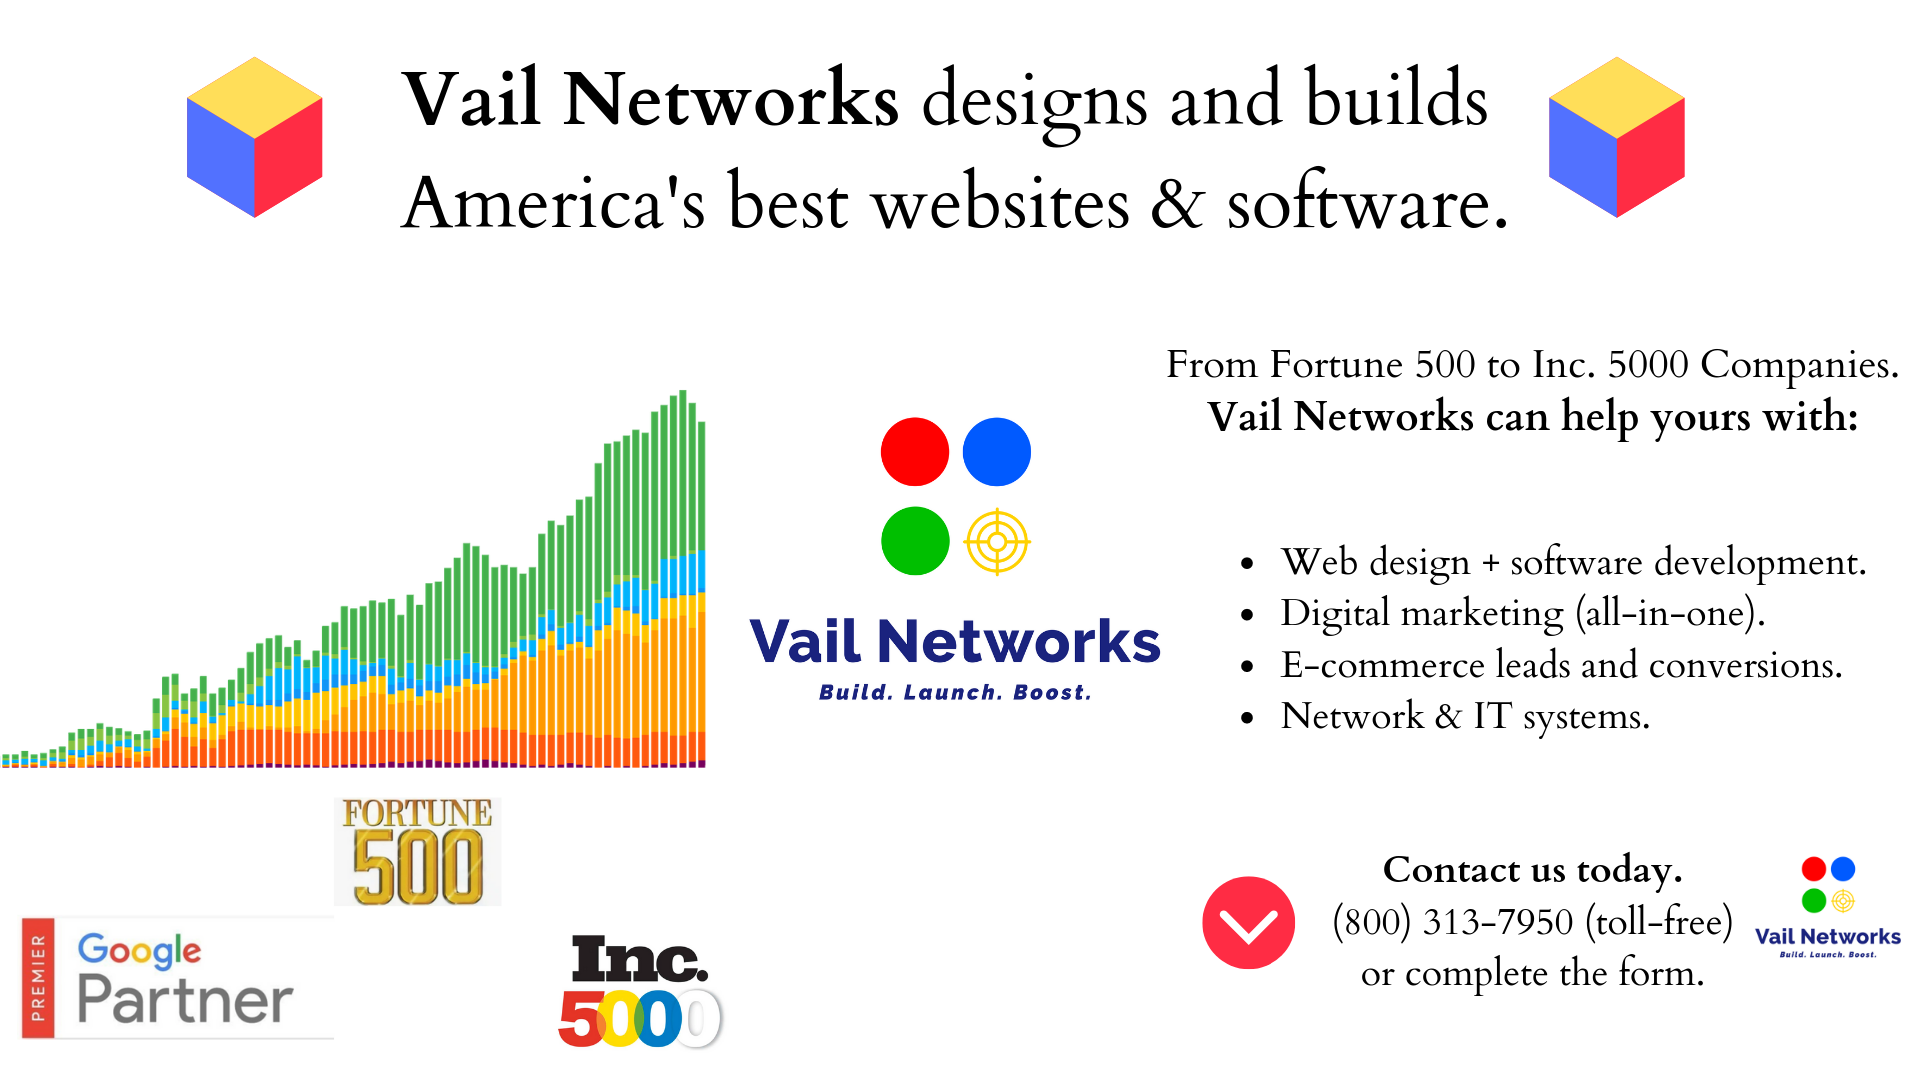 review of the best seo tools and marketing software by vailnetworks.com.